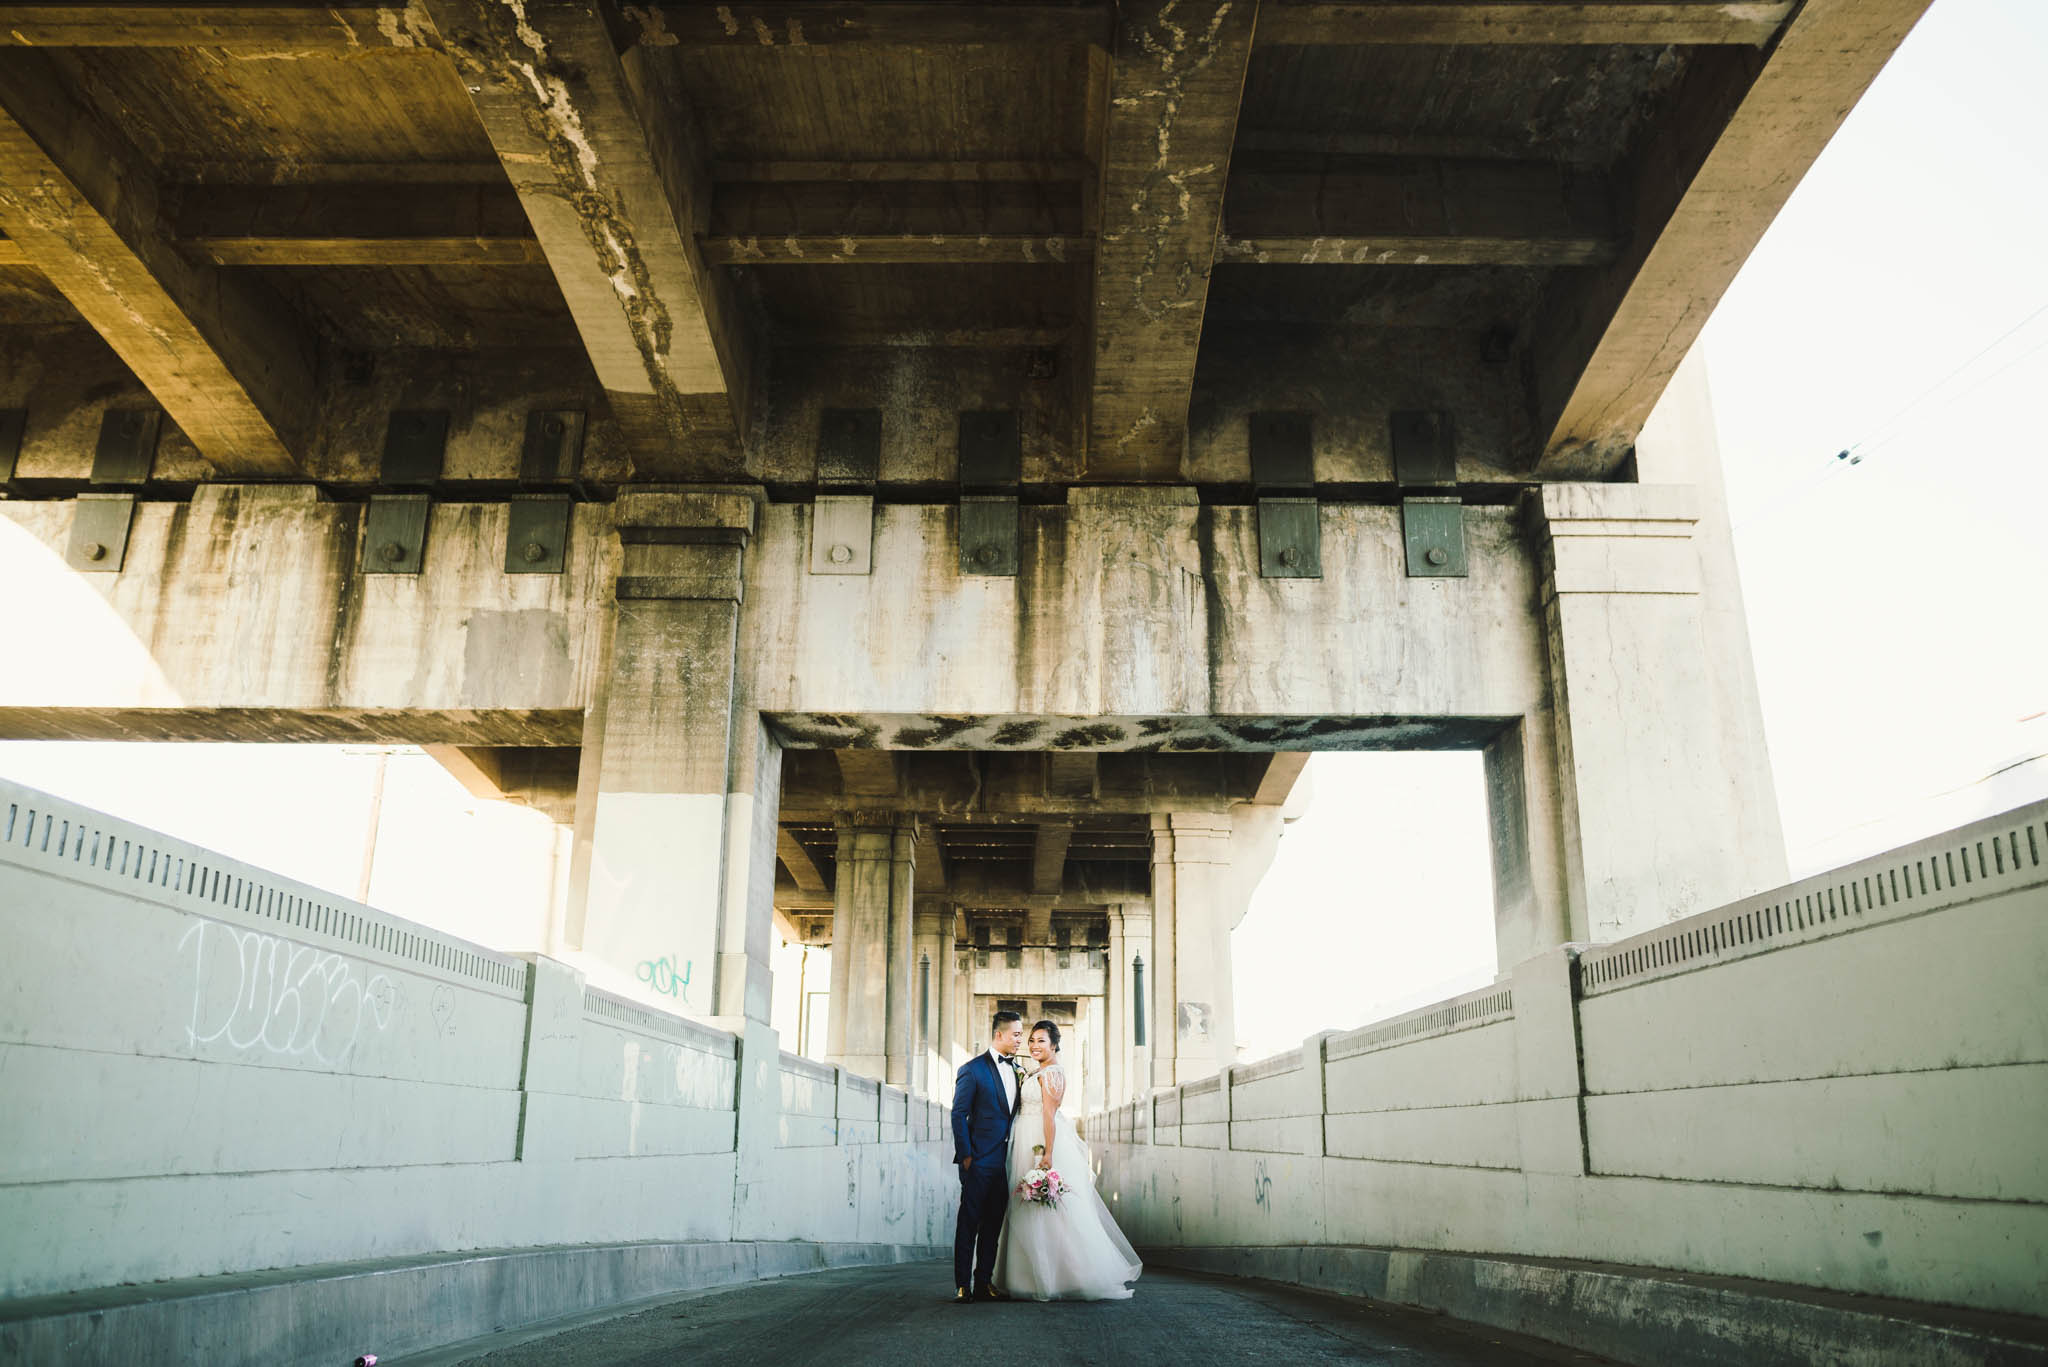 ©Isaiah & Taylor Photography - Los Angeles Wedding Photographer - Lot 613 Warehouse Space-49.jpg